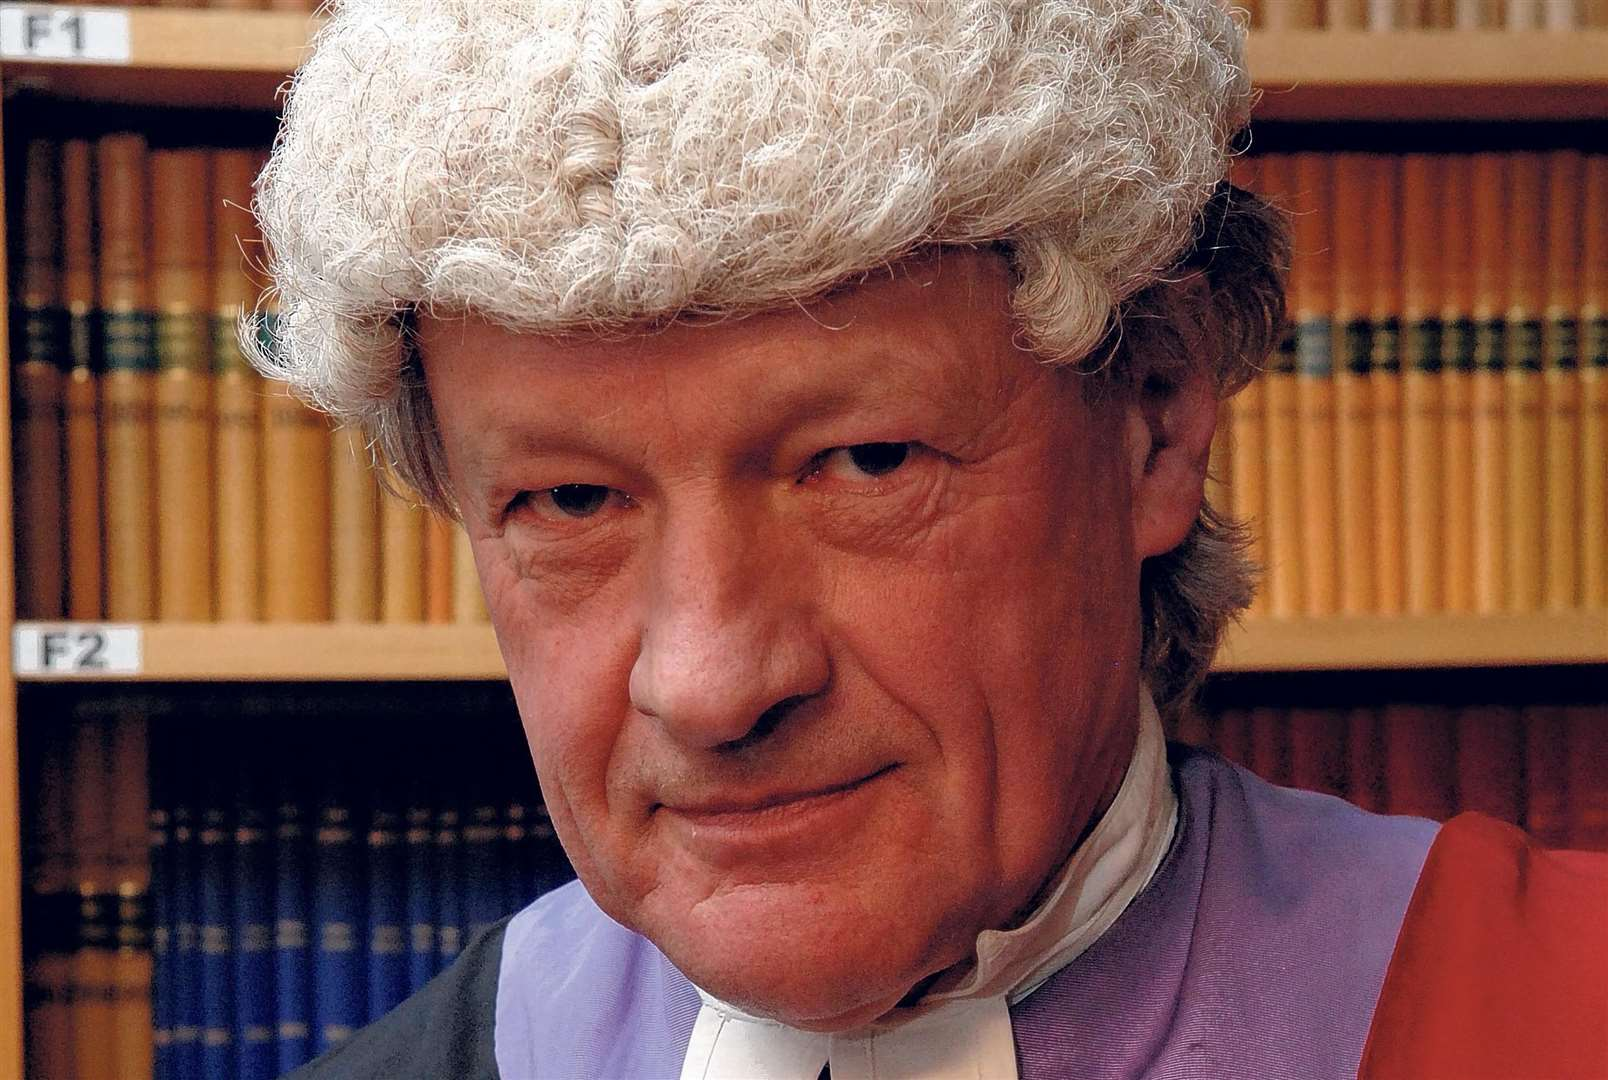 Judge James O'Mahony